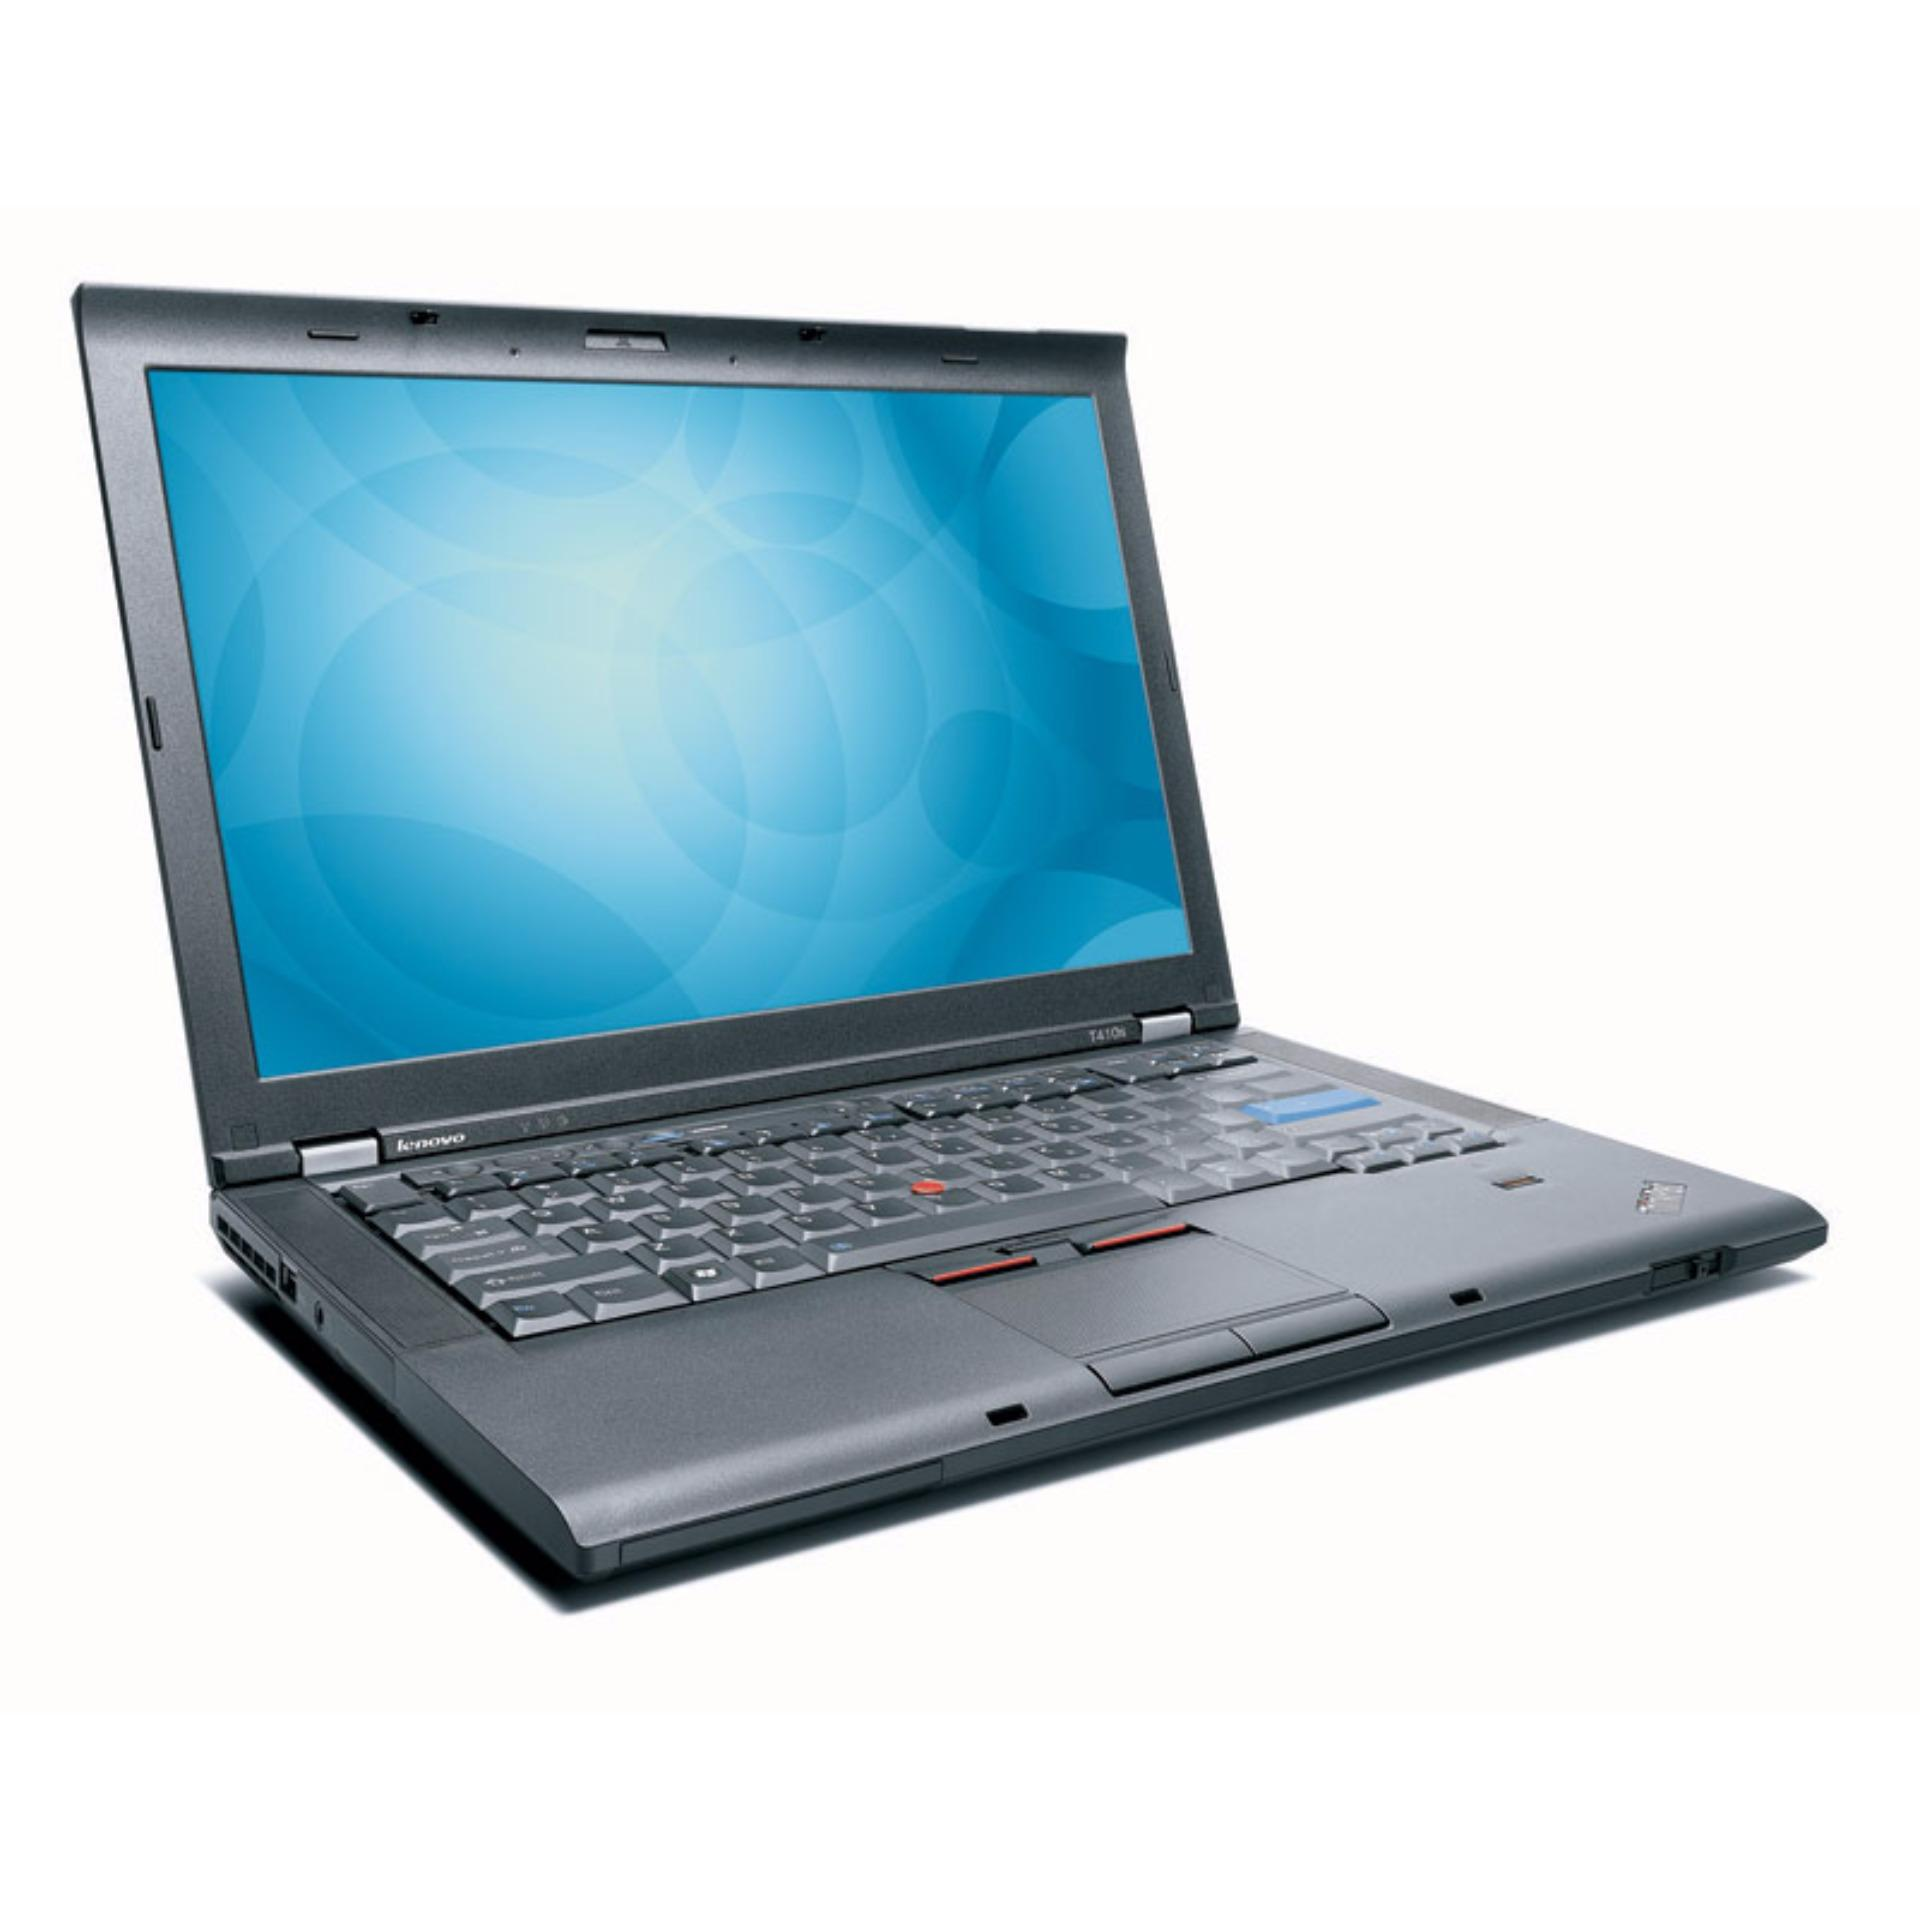 (Refurbished) Lenovo T410 - 14.1